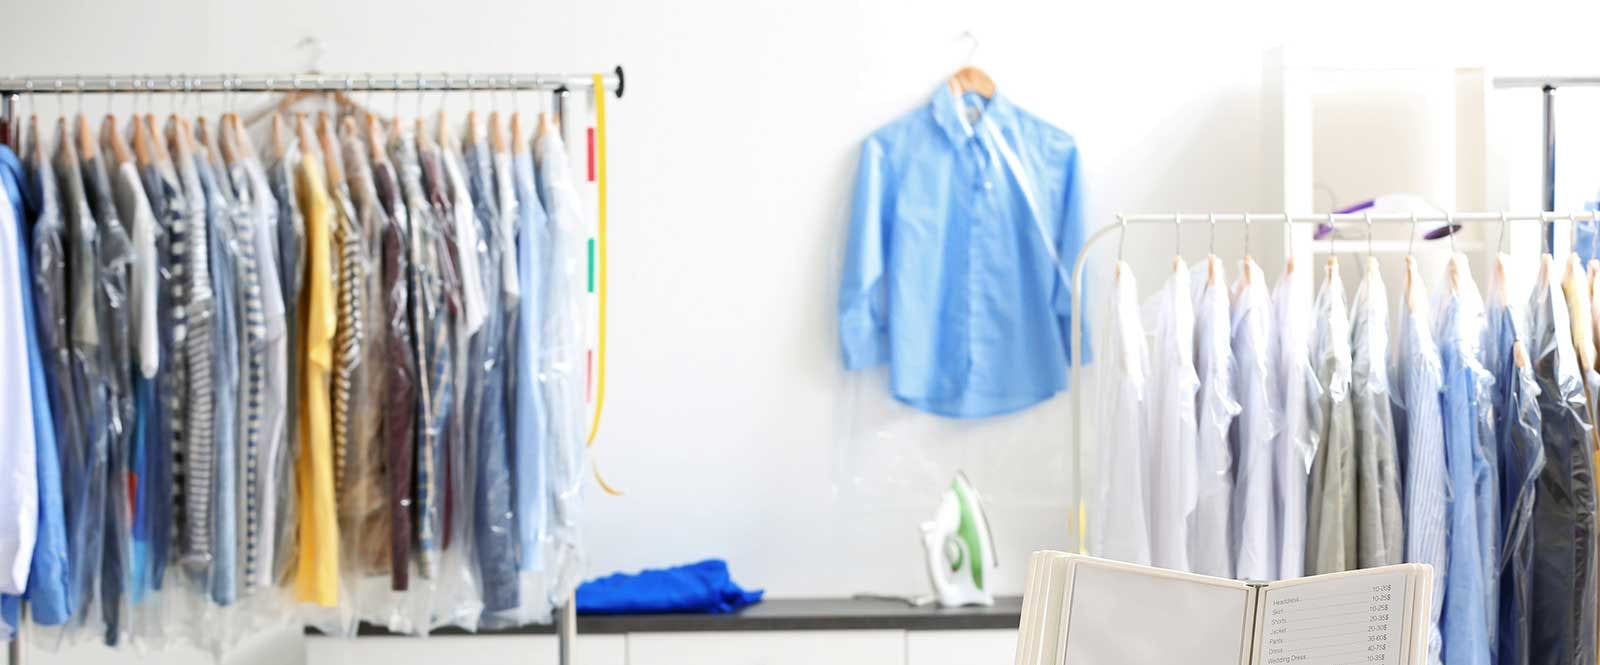 About our laundry service